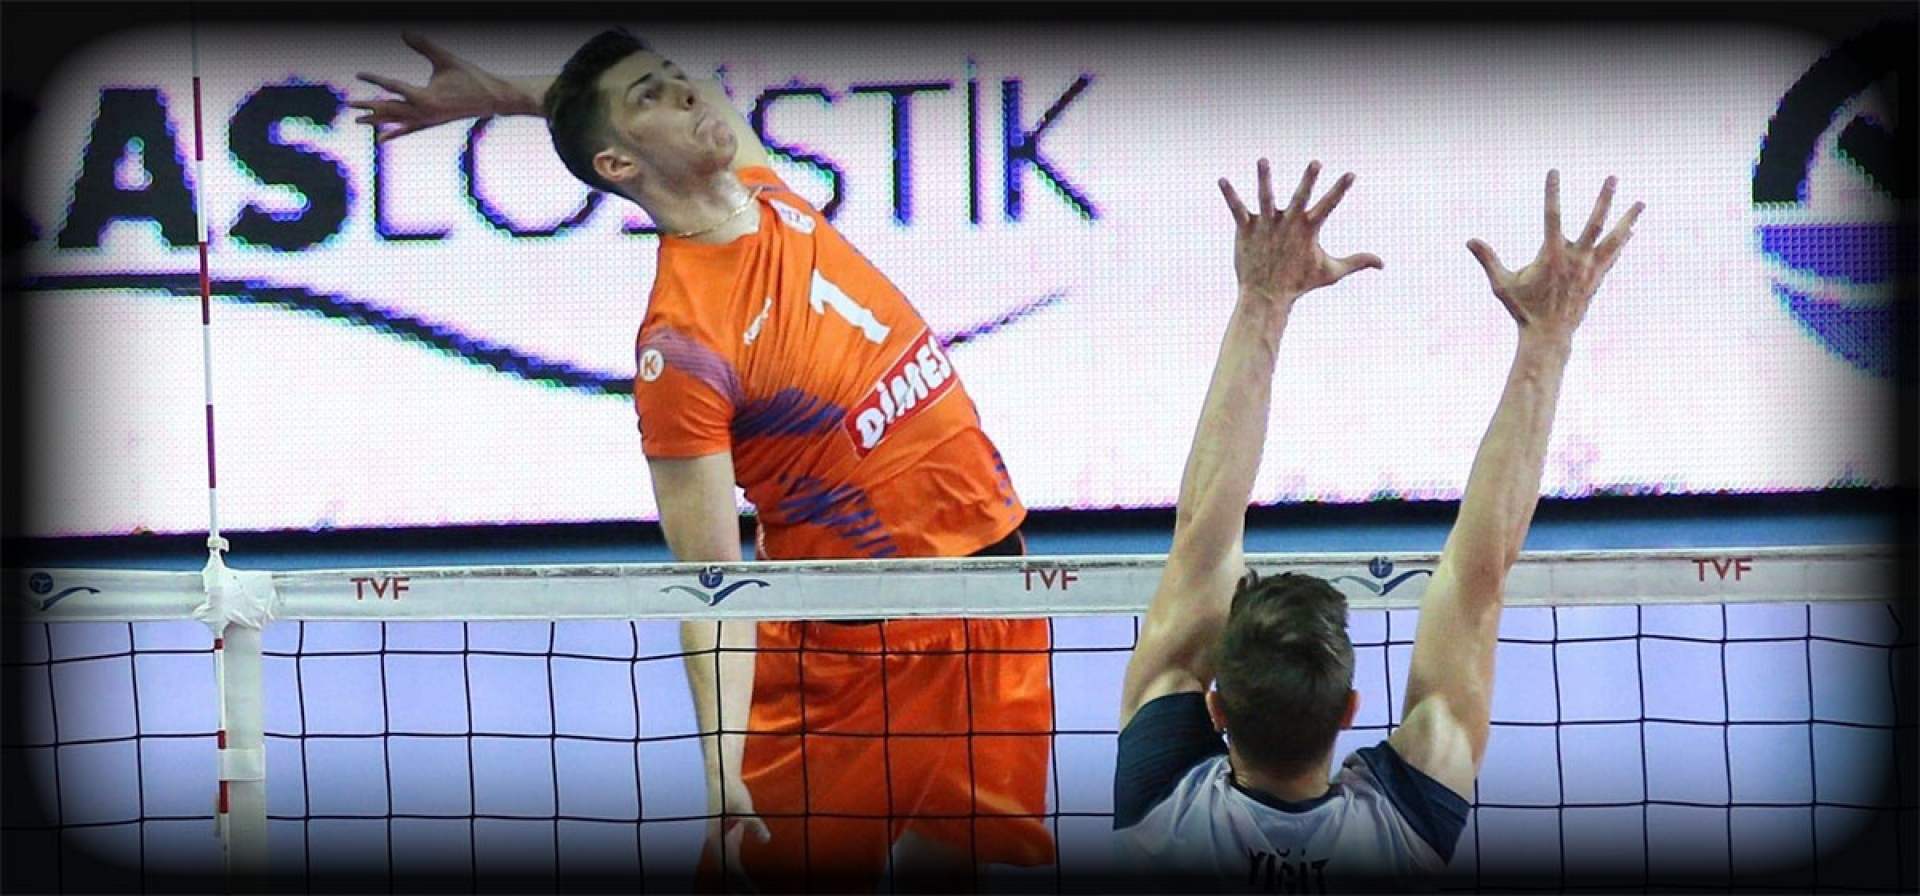 FIRKAL 2nd SLOVAKIAN PLAYER EVER WHO SIGNED AT RUSSIAN SUPER LEAGUE !